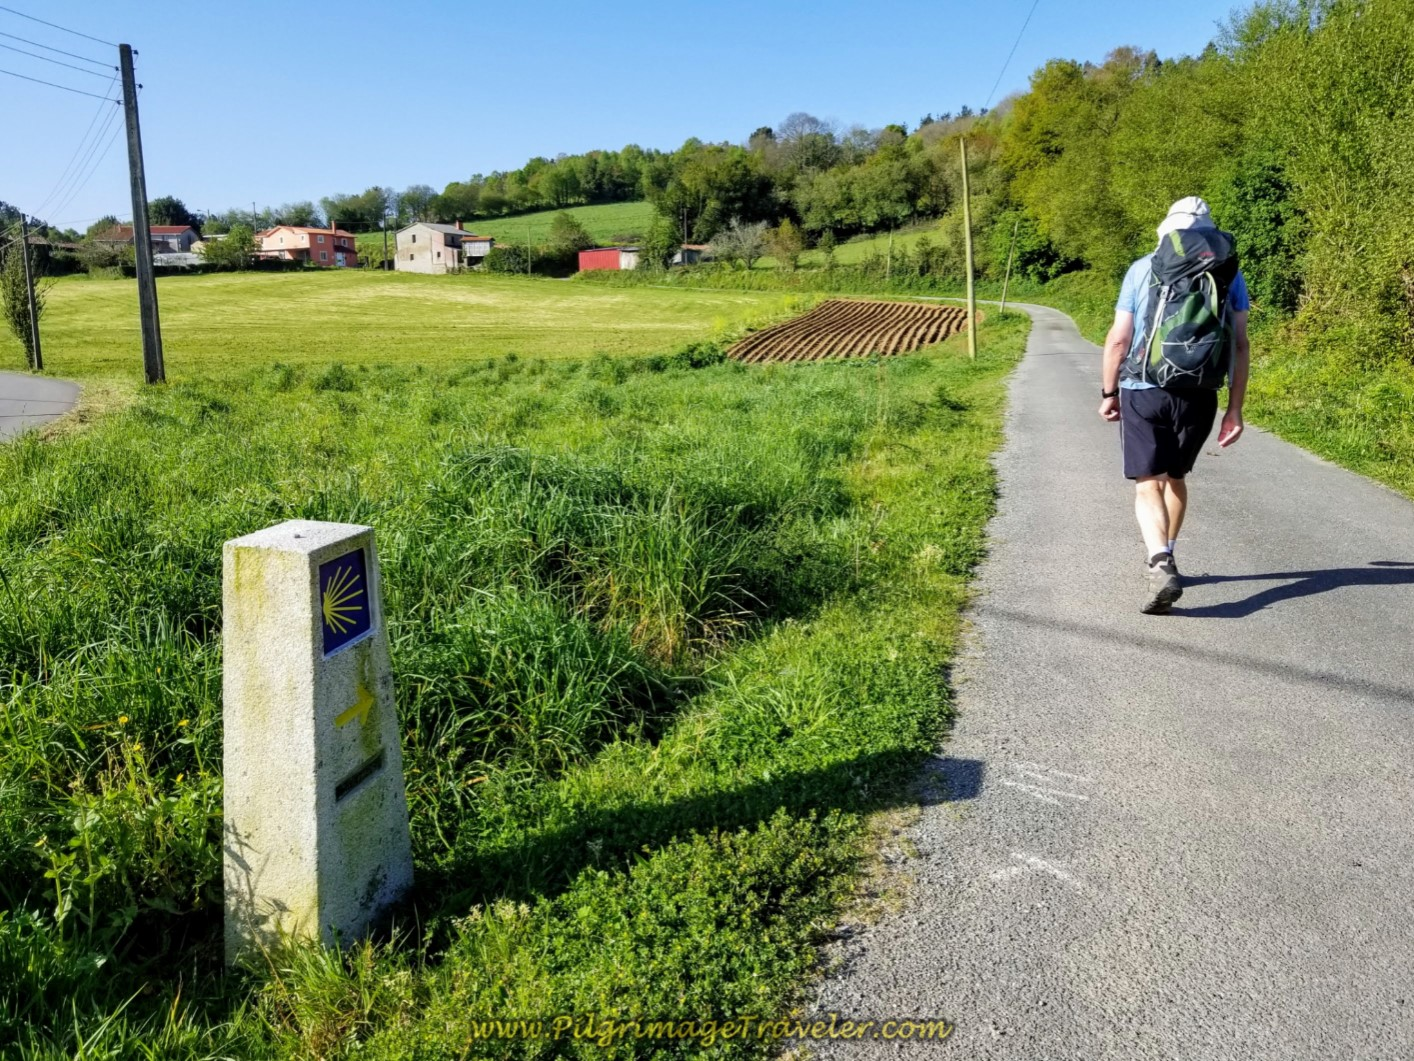 Rob En Route Towards Vao on day six of the Camino Inglés